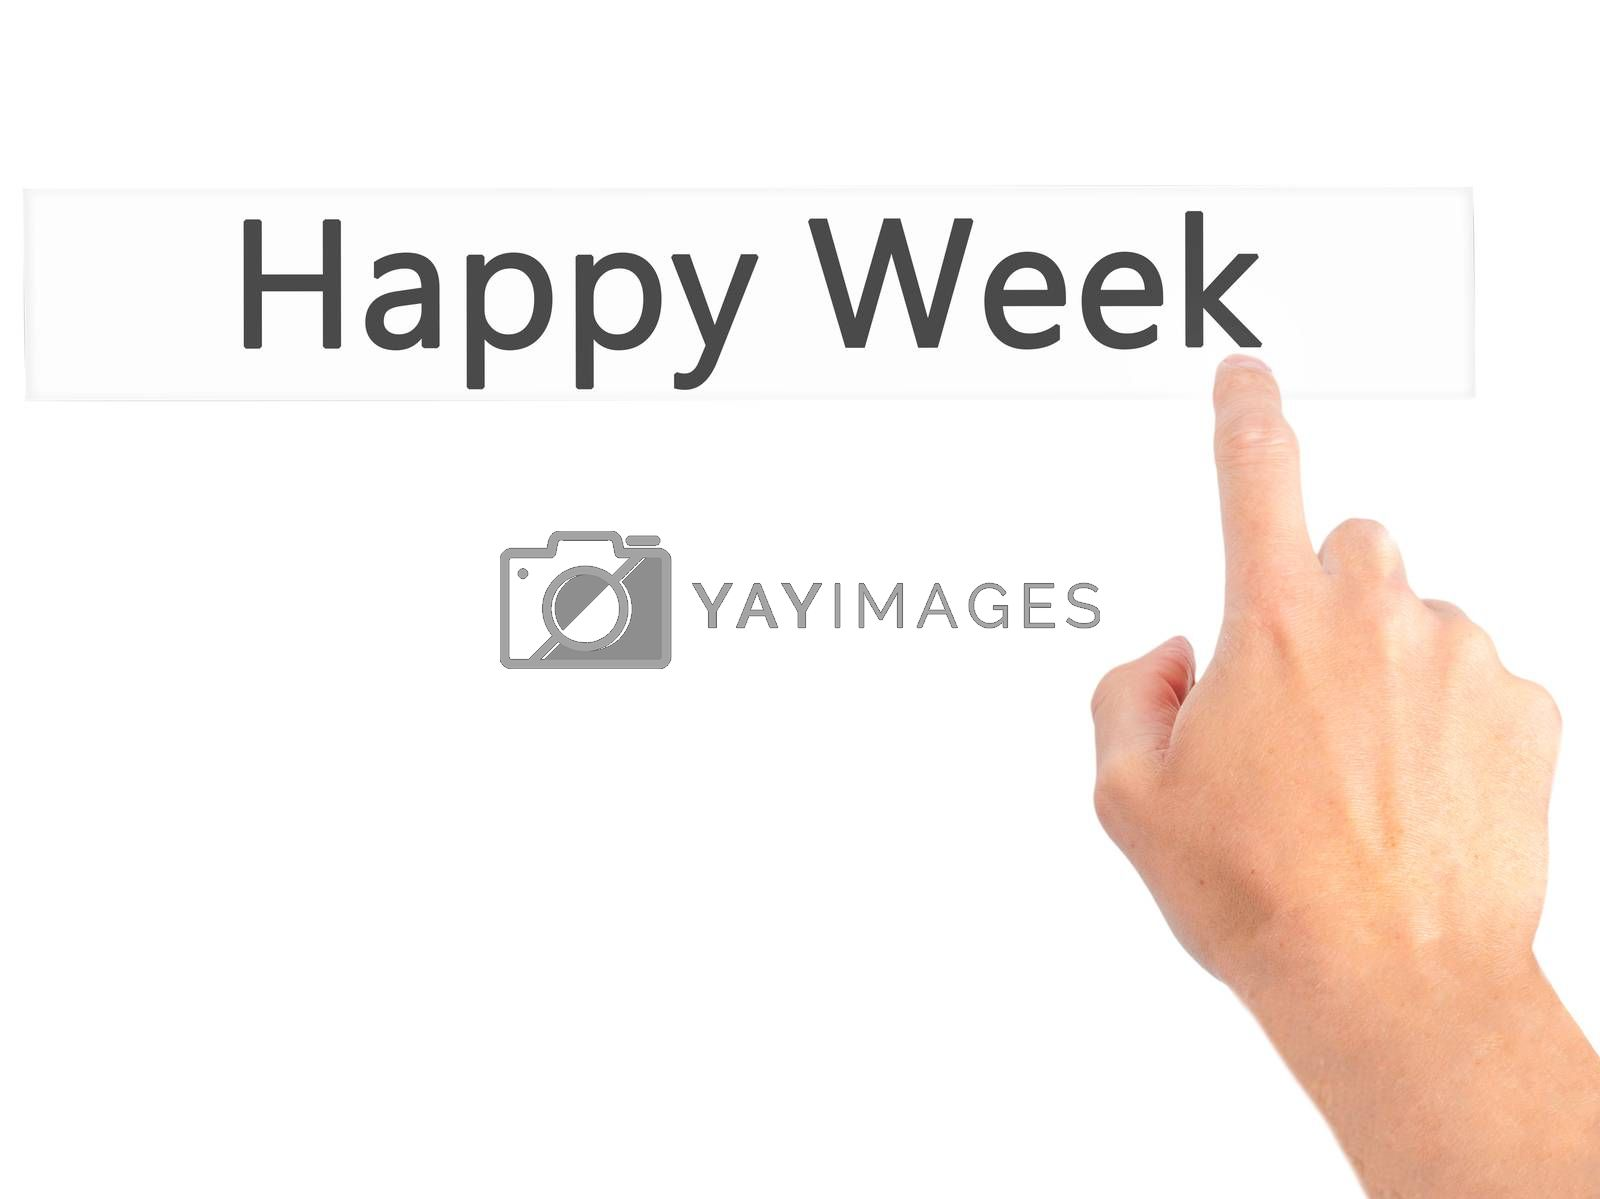 Happy Week - Hand pressing a button on blurred background concep by netsay.net